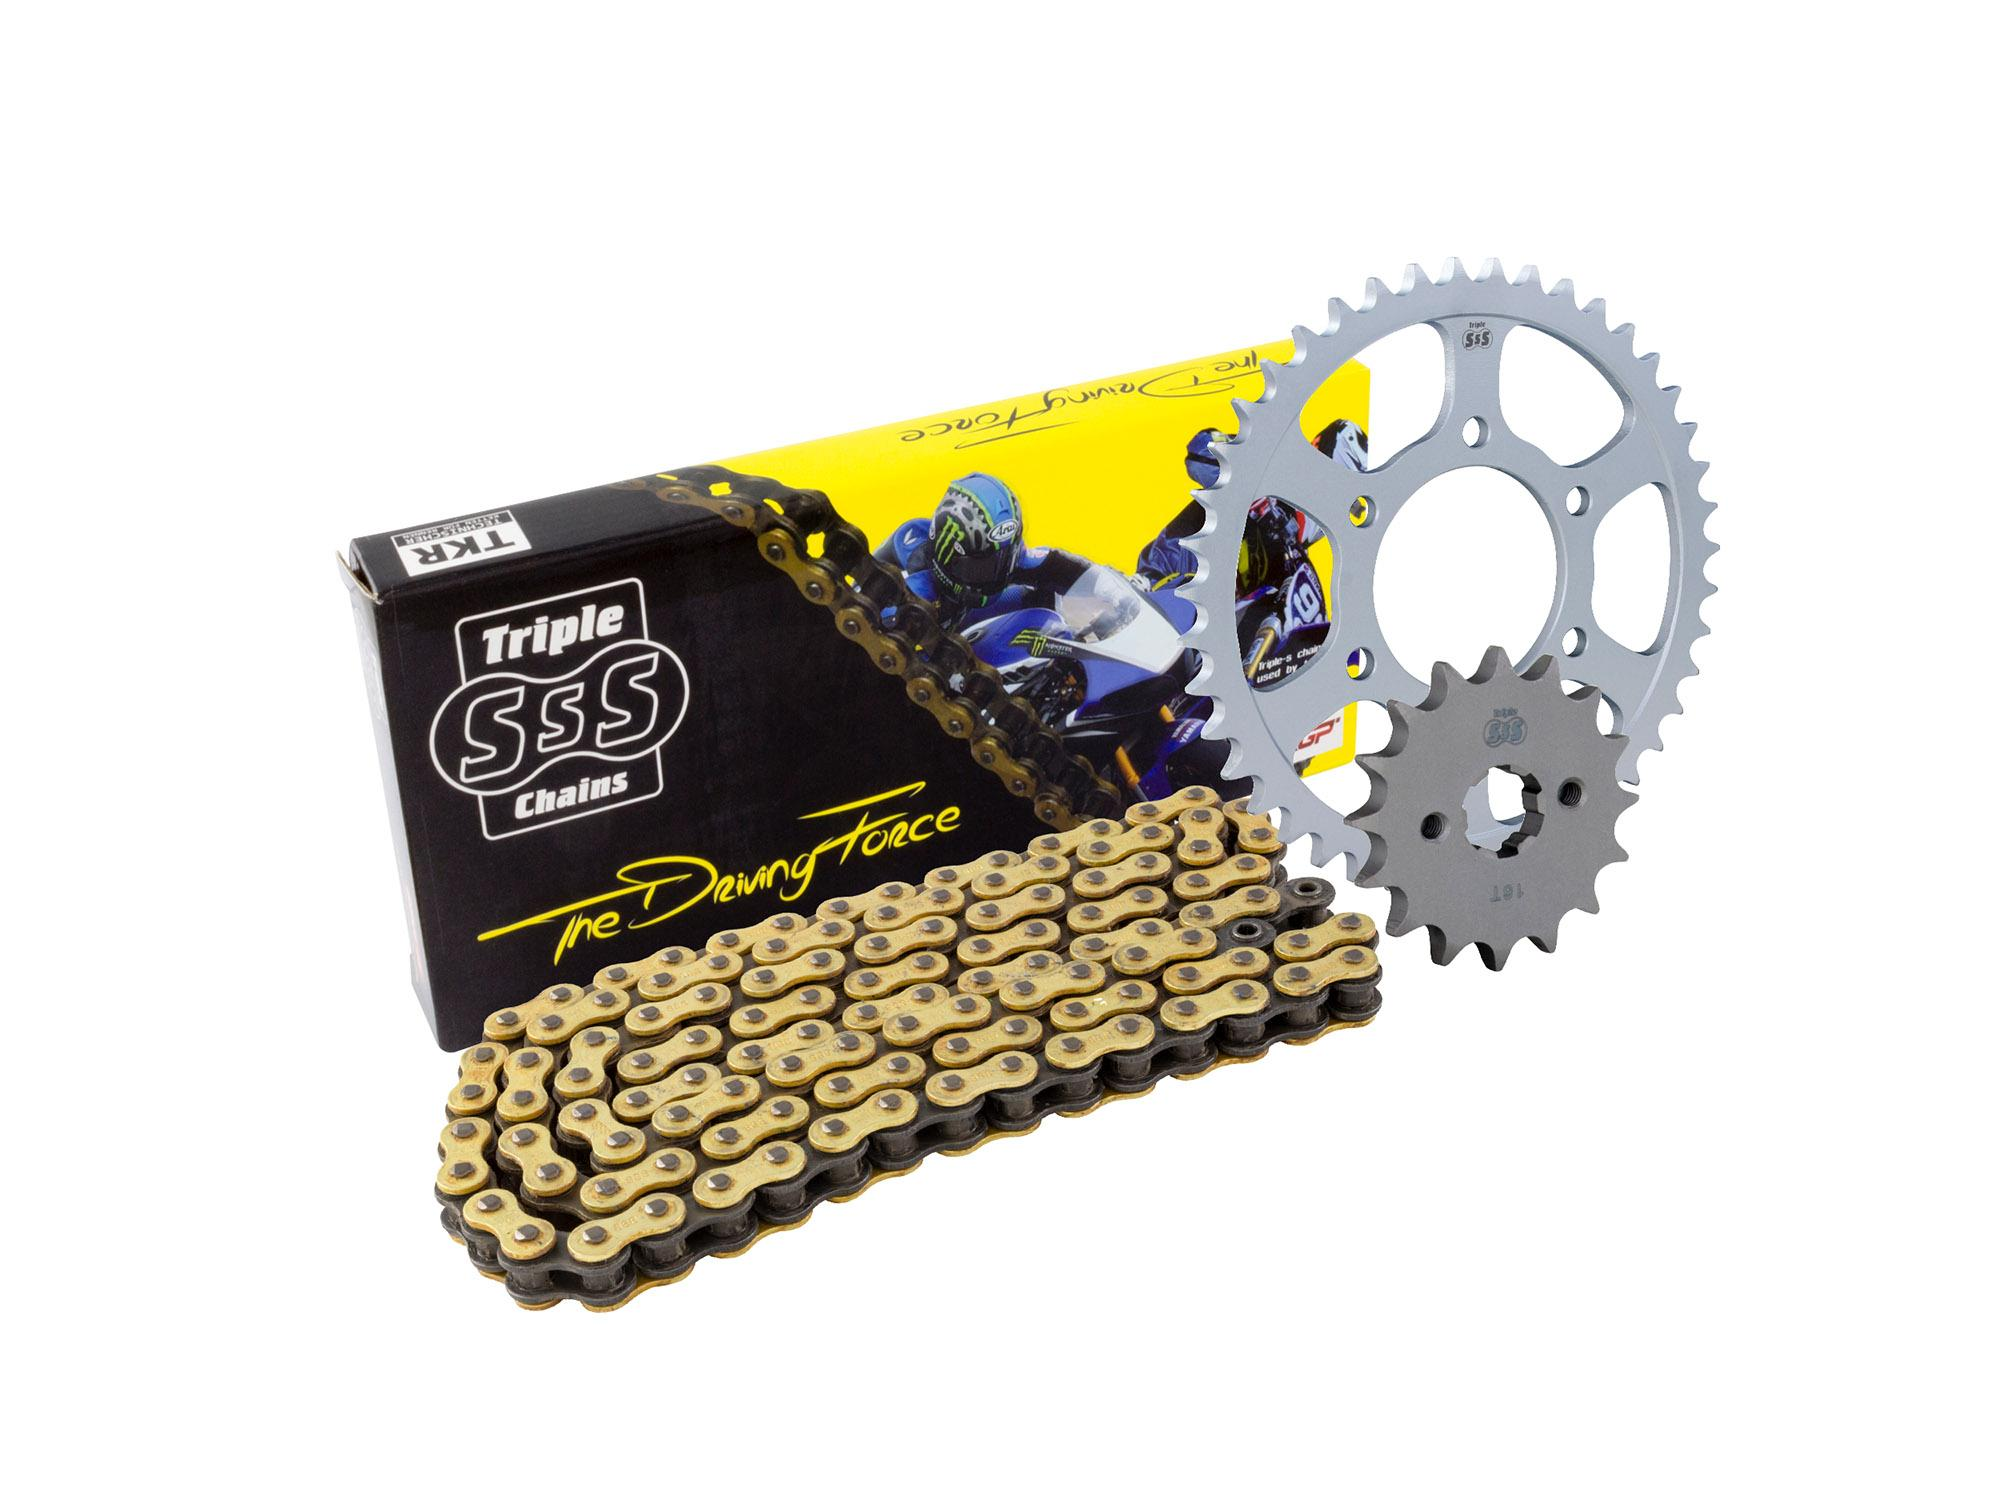 BMW F700 GS 13-16 Chain & Sprocket Kit: 17T Front, 42T Rear, HD O-Ring Gold Chain 525H 116Link